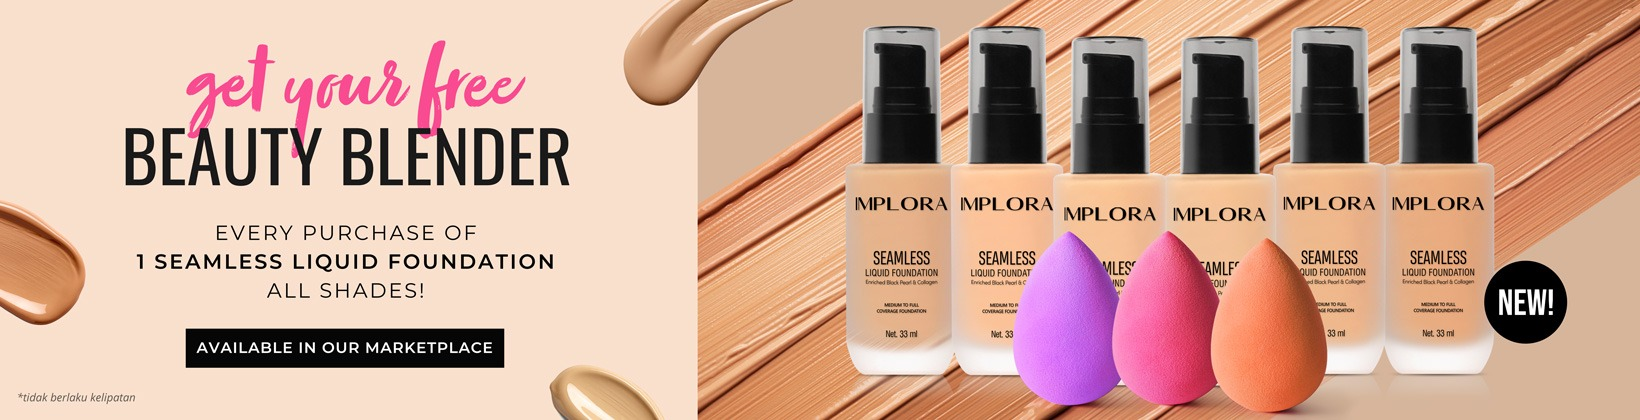 Implora Cosmetics